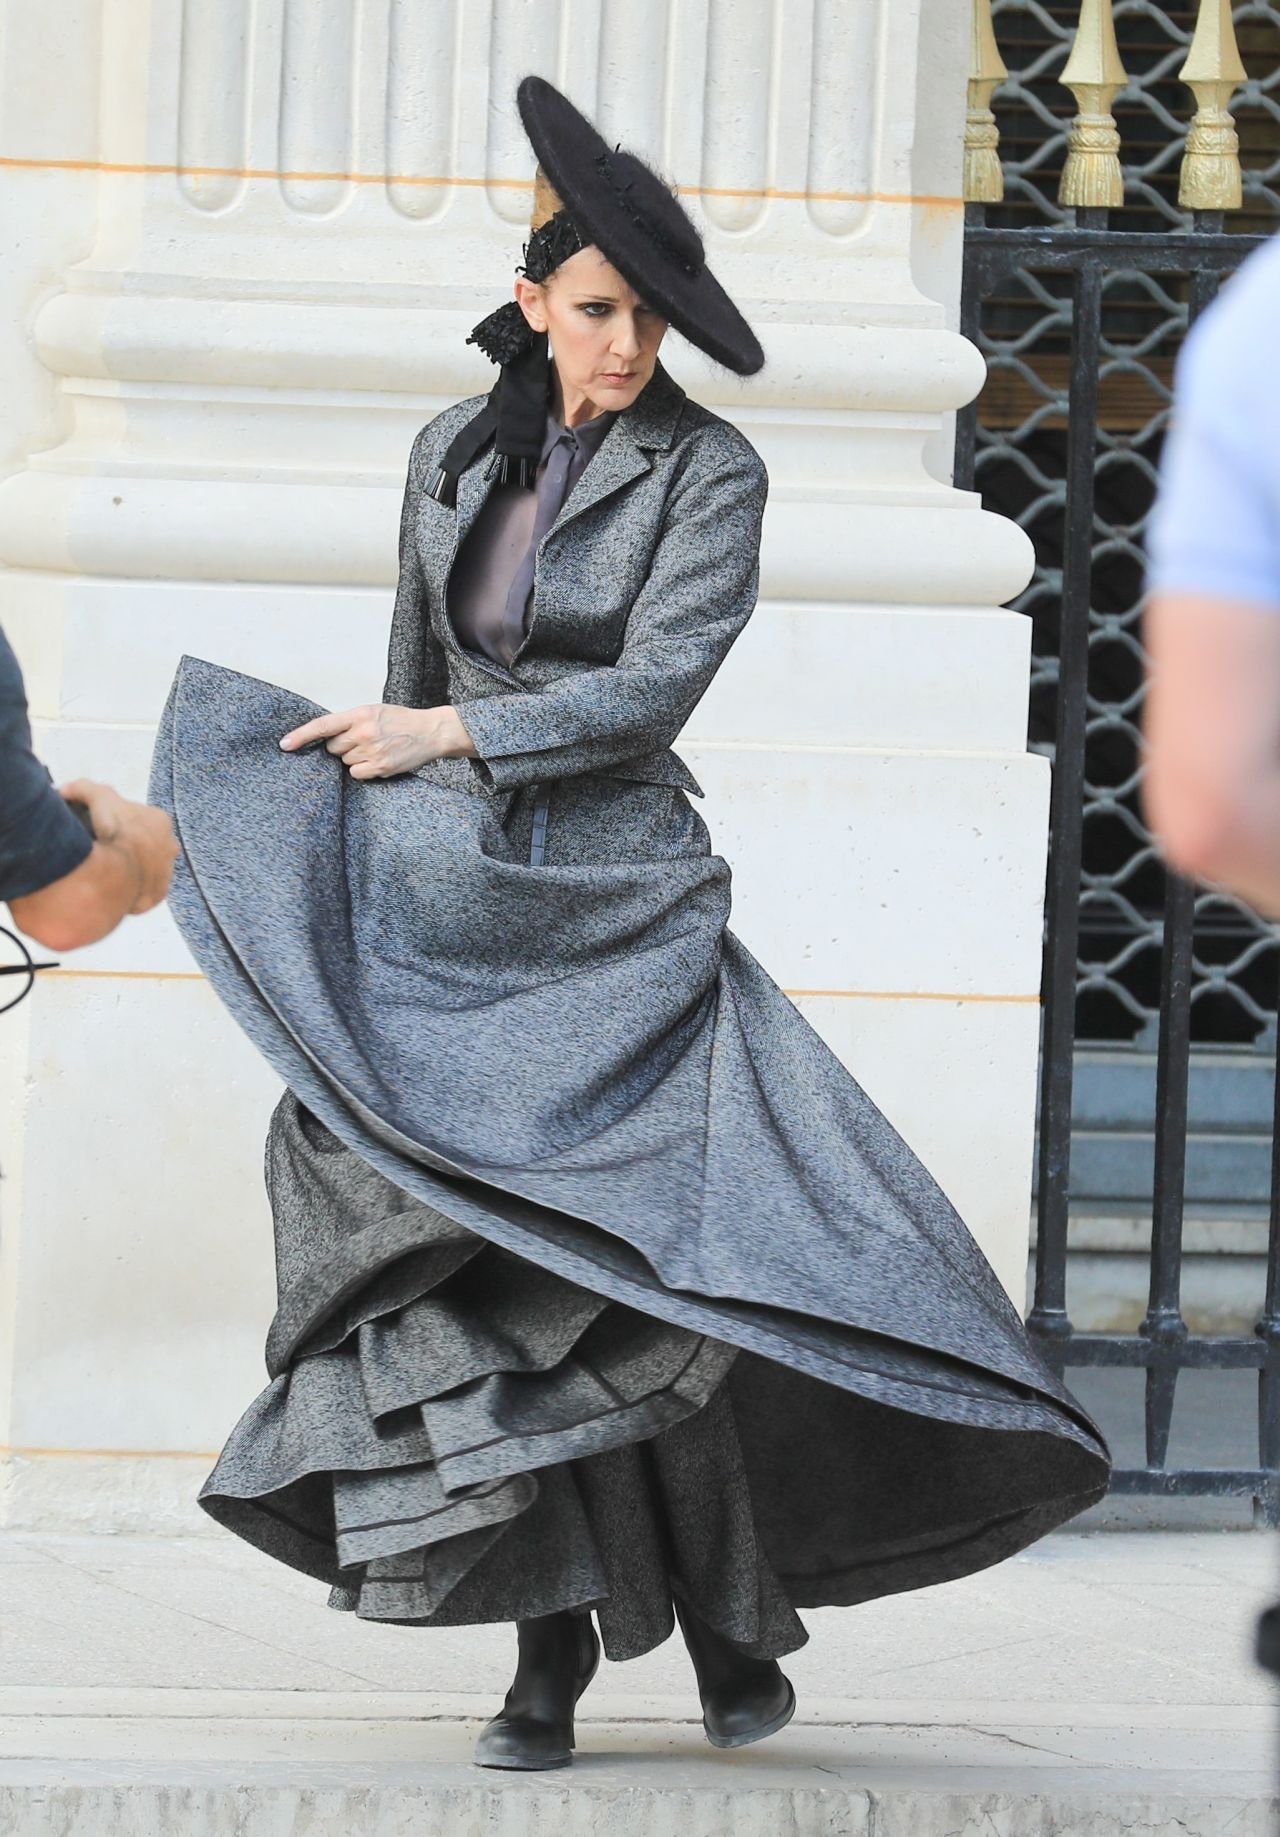 ** RIGHTS: ONLY UNITED STATES, CANADA ** Paris, FRANCE  - Singer Celine Dion is spotted dancing during a video shoot for Vogue in the garden of the Palais Royal in Paris, France. Celine was wearing a turn of the century grey dress with a wide brim black hat.  Pictured: Celine Dion  BACKGRID USA 6 JULY 2017   BYLINE MUST READ: Best Image / BACKGRID  USA: +1 310 798 9111 / usasales@backgrid.com  UK: +44 208 344 2007 / uksales@backgrid.com  *UK Clients - Pictures Containing Children Please Pixelate Face Prior To Publication*